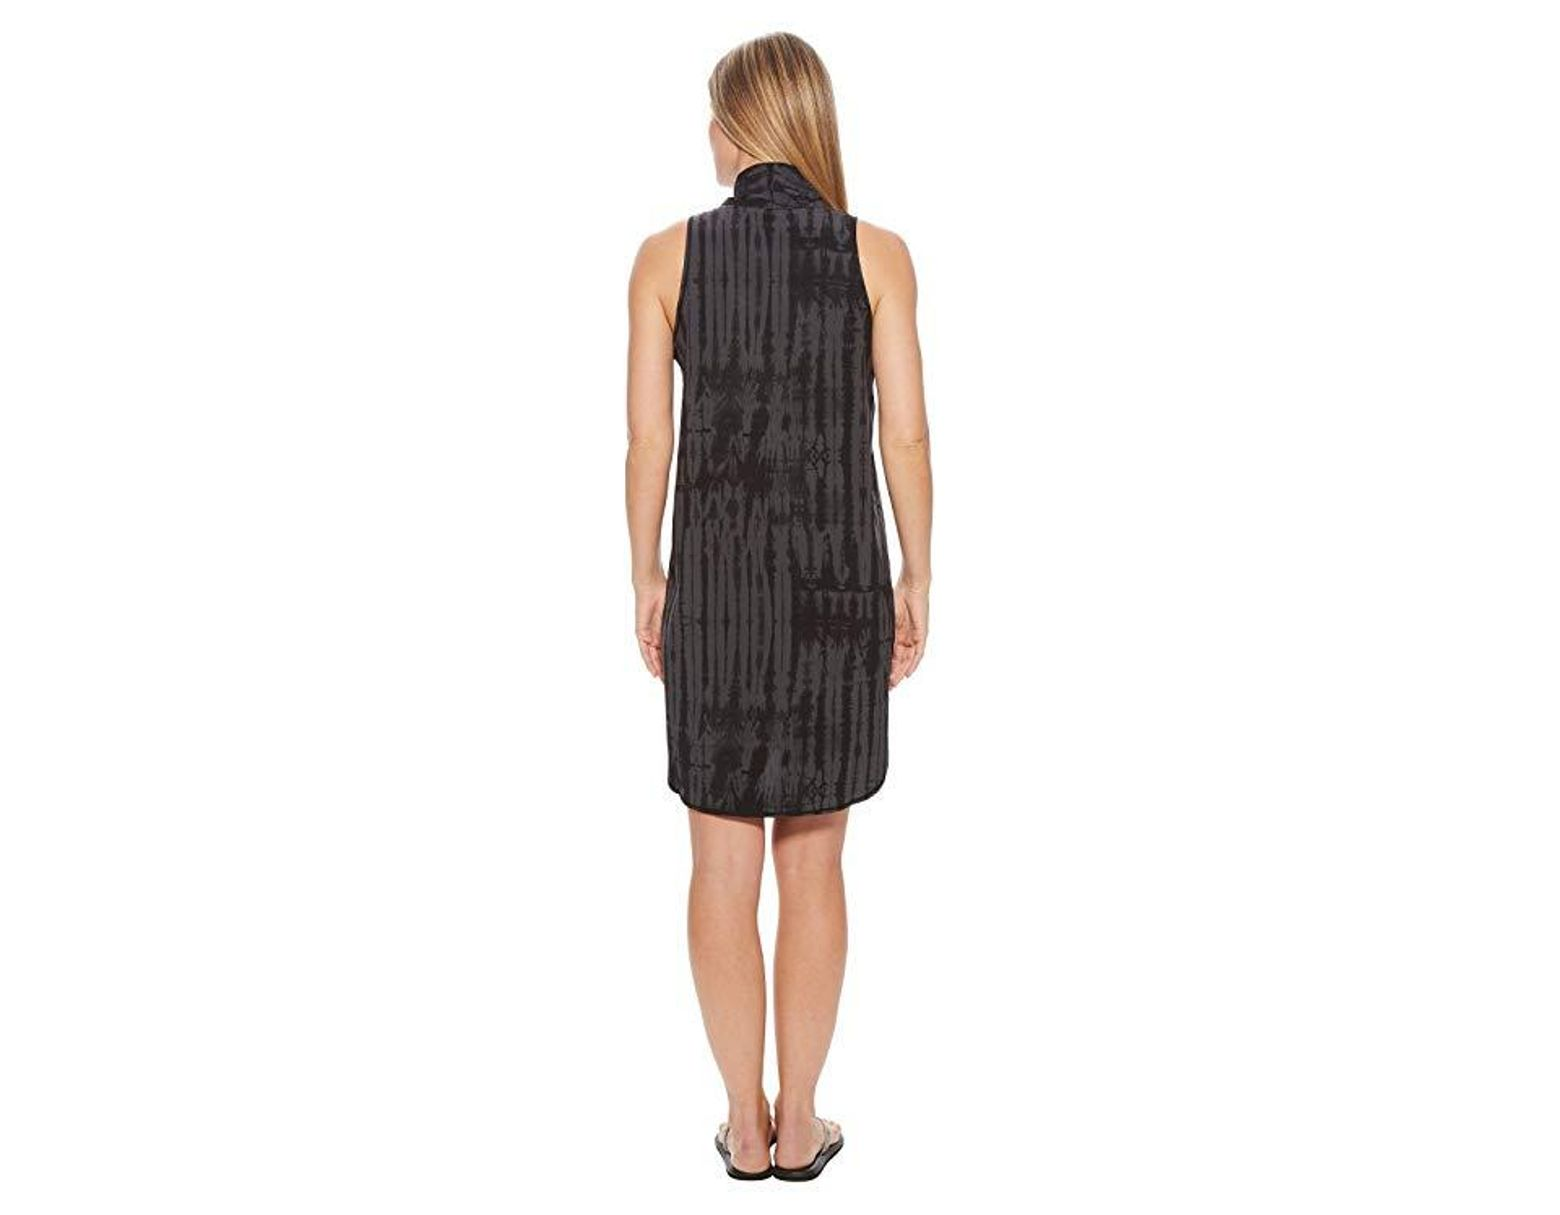 474c32b7d4 The North Face Destination Anywhere Dress (tnf Black Shibori Print) Dress  in Black - Save 20% - Lyst